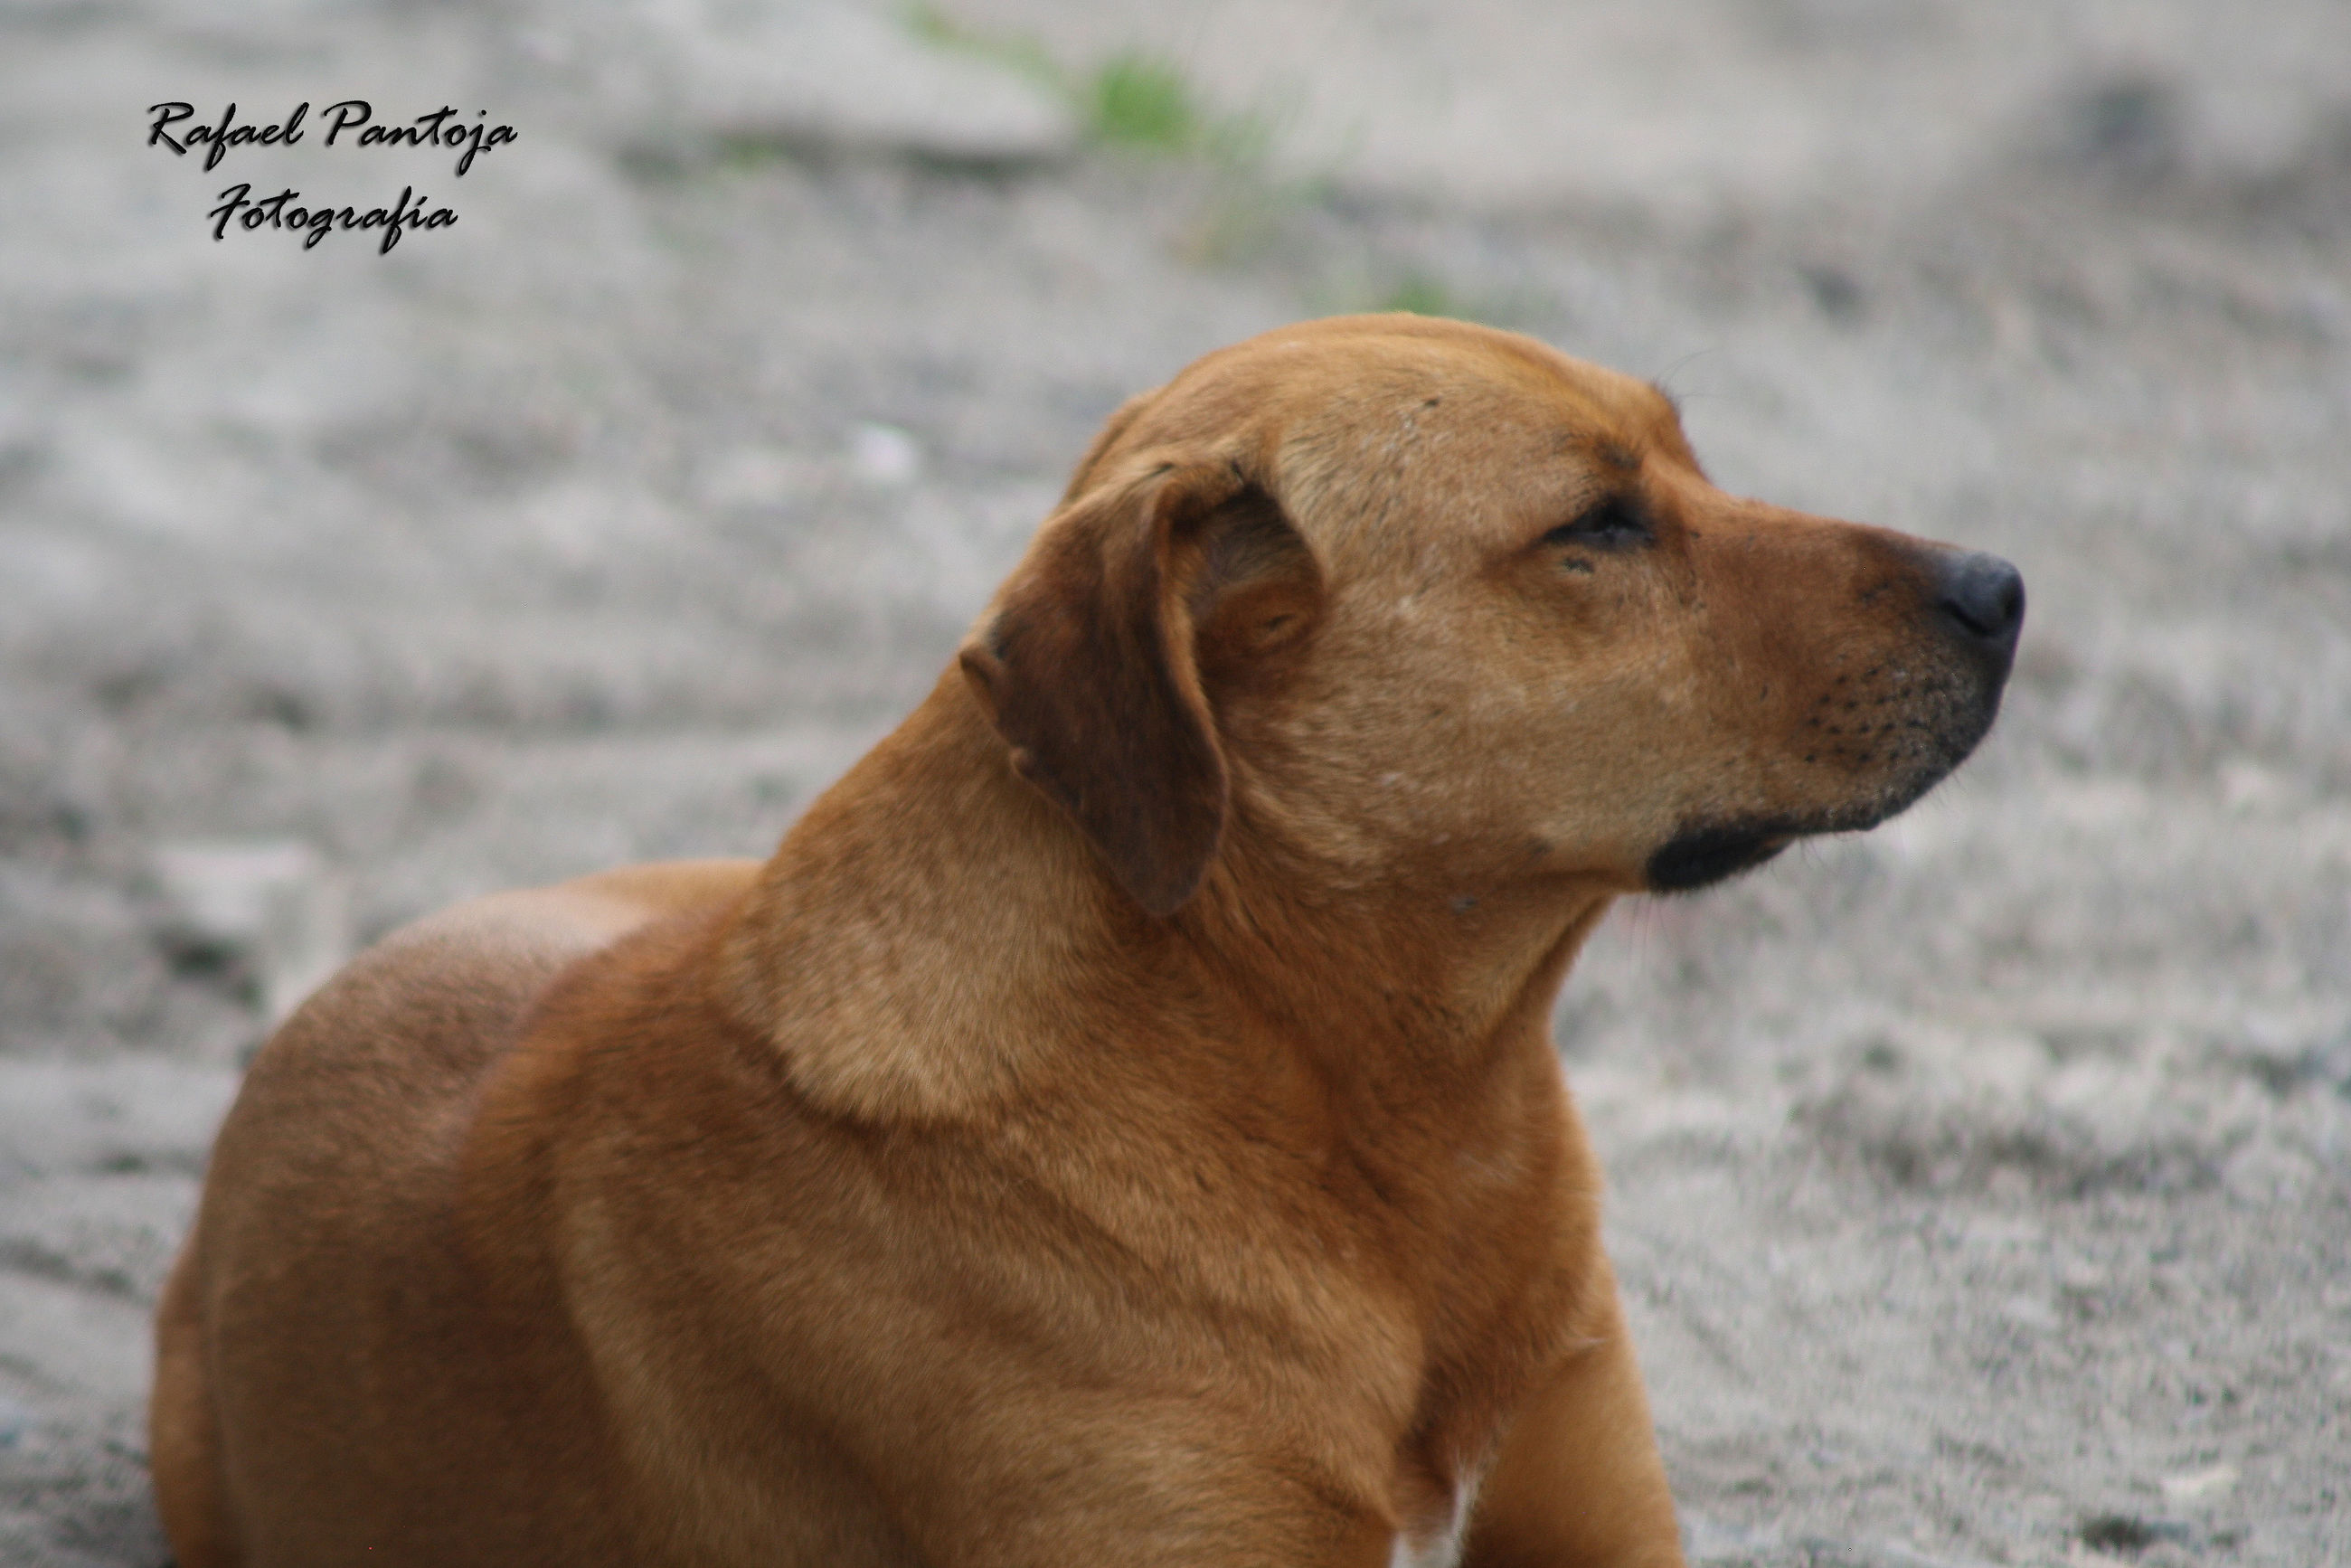 dog, one animal, animal themes, mammal, pets, close-up, outdoors, no people, day, domestic animals, nature